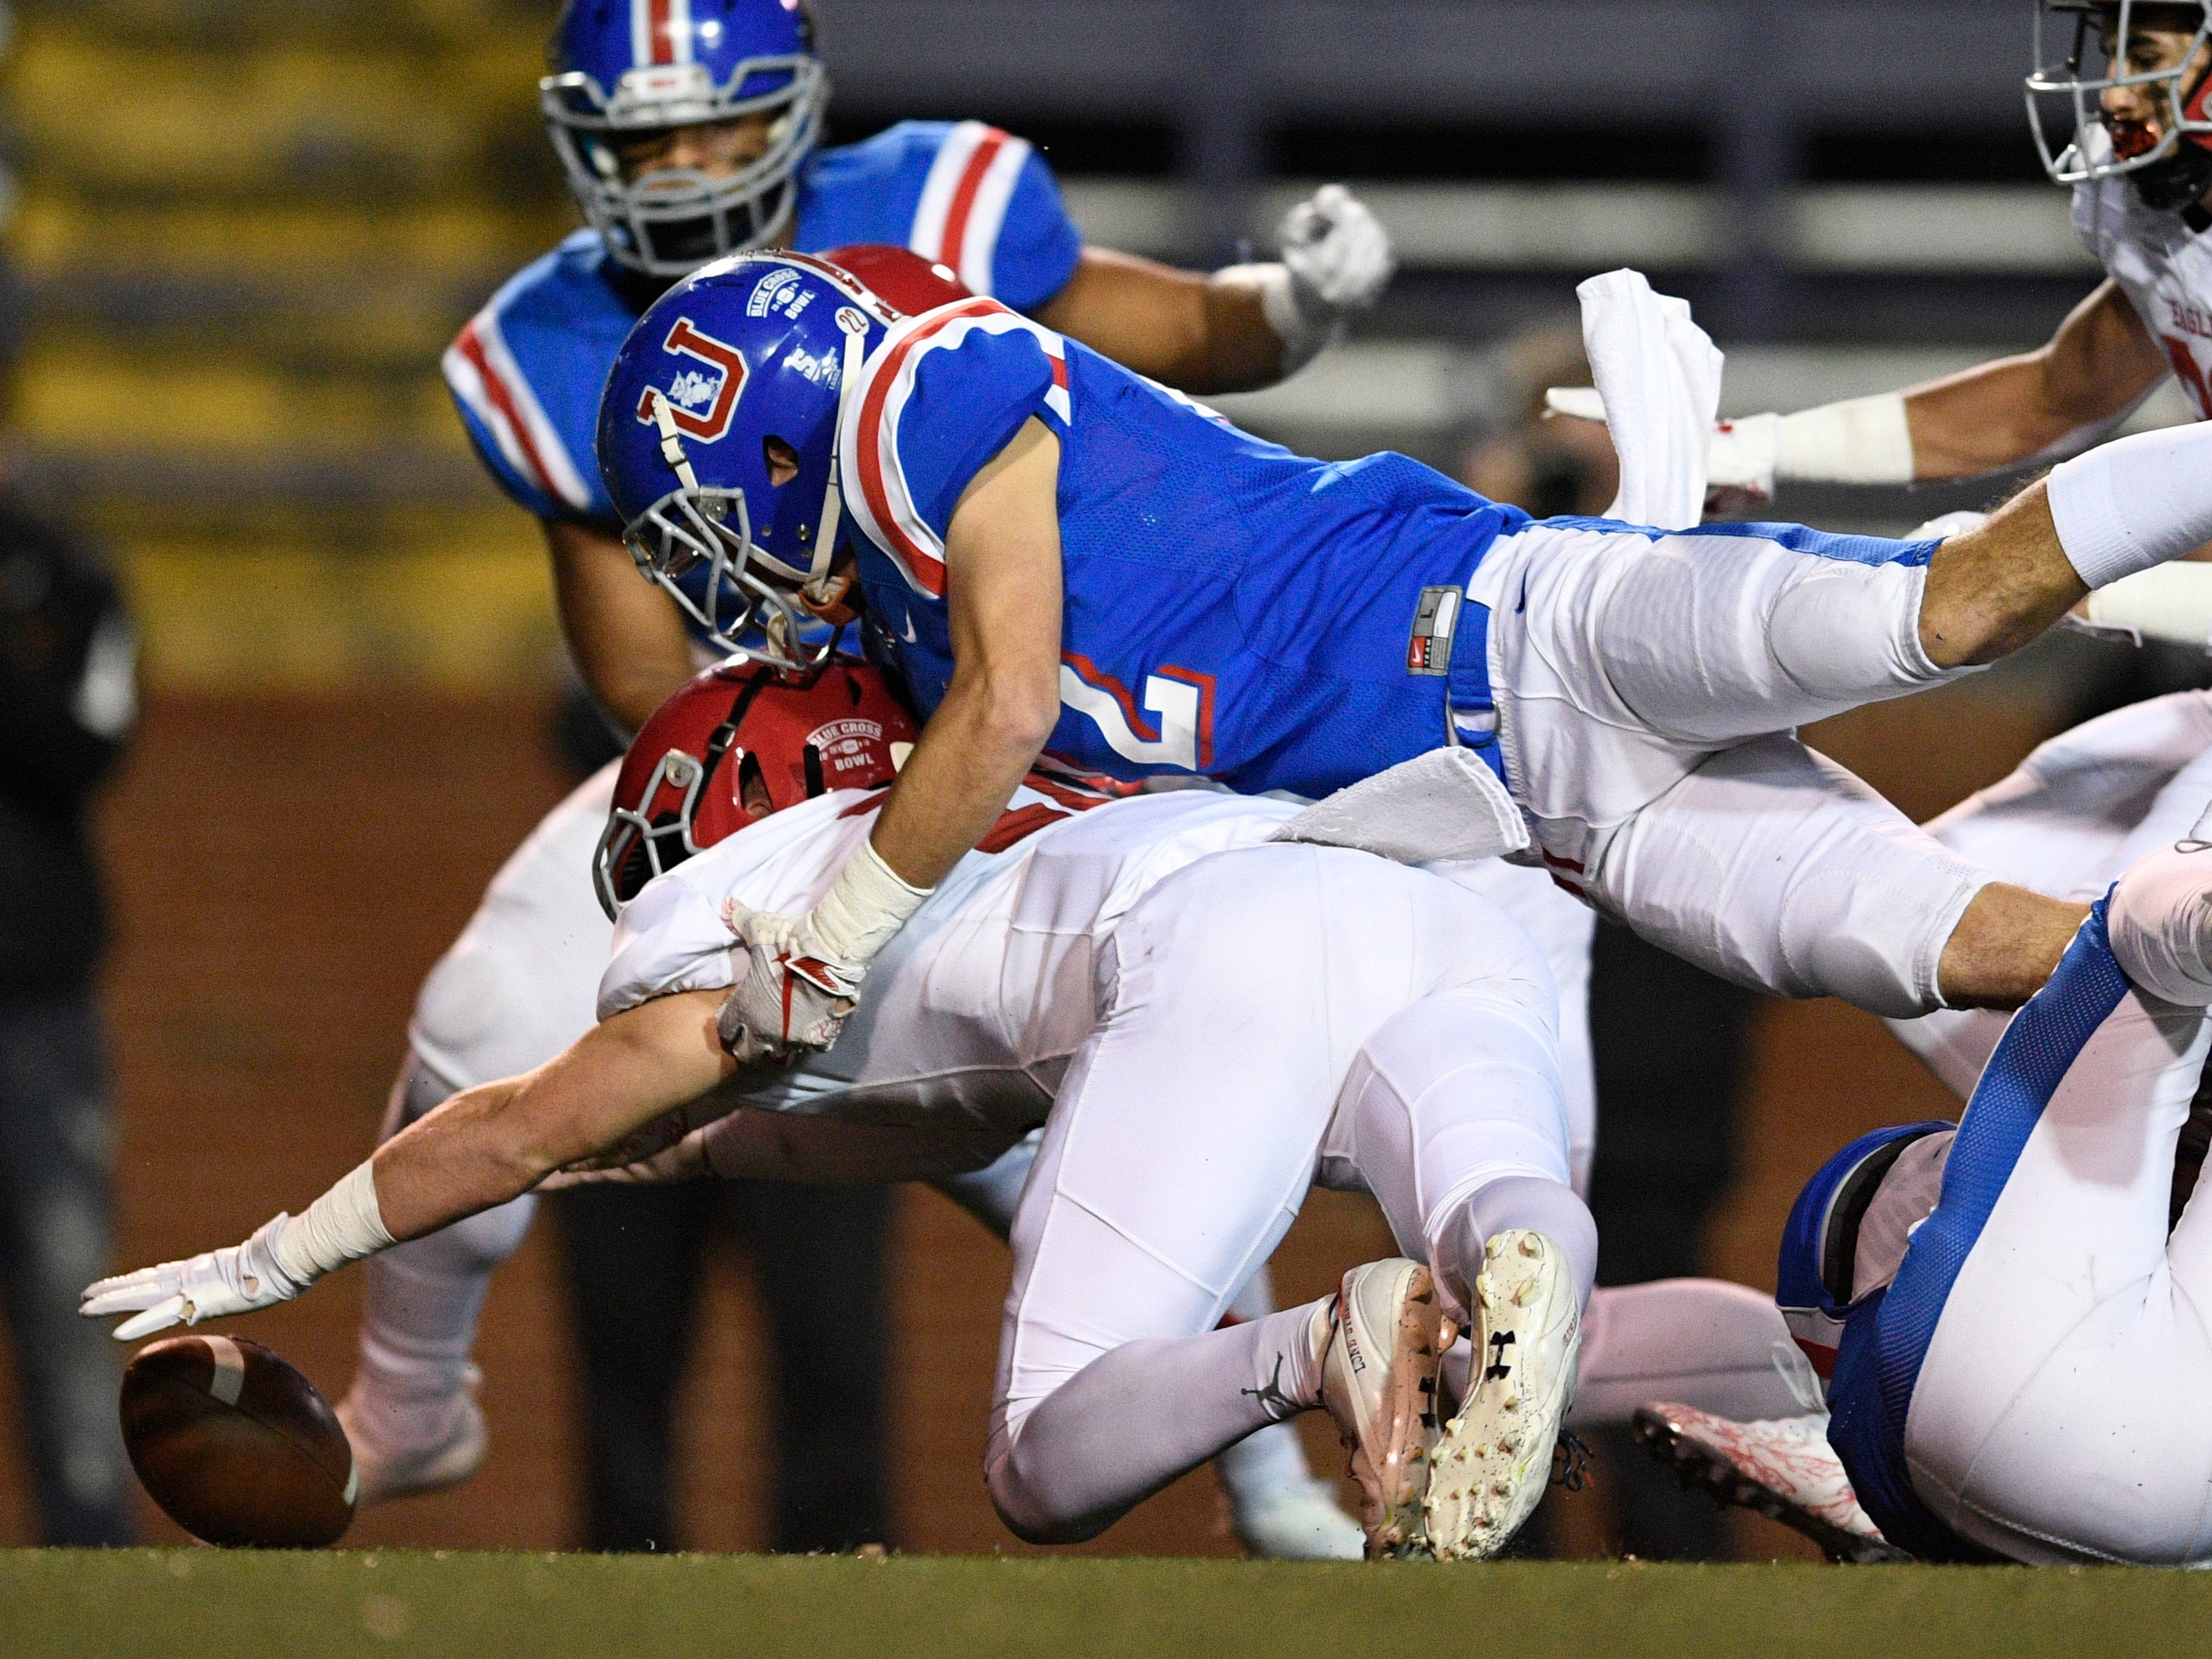 Memphis Univ. School running back Matt Rhodes (22) and Brentwood Academy linebacker Jack Victory (11) go after a loose ball in the first quarter at the Division II-AAA BlueCross Bowl state championship at Tennessee Tech's Tucker Stadium in Cookeville, Tenn., on Friday, Nov. 30, 2018.